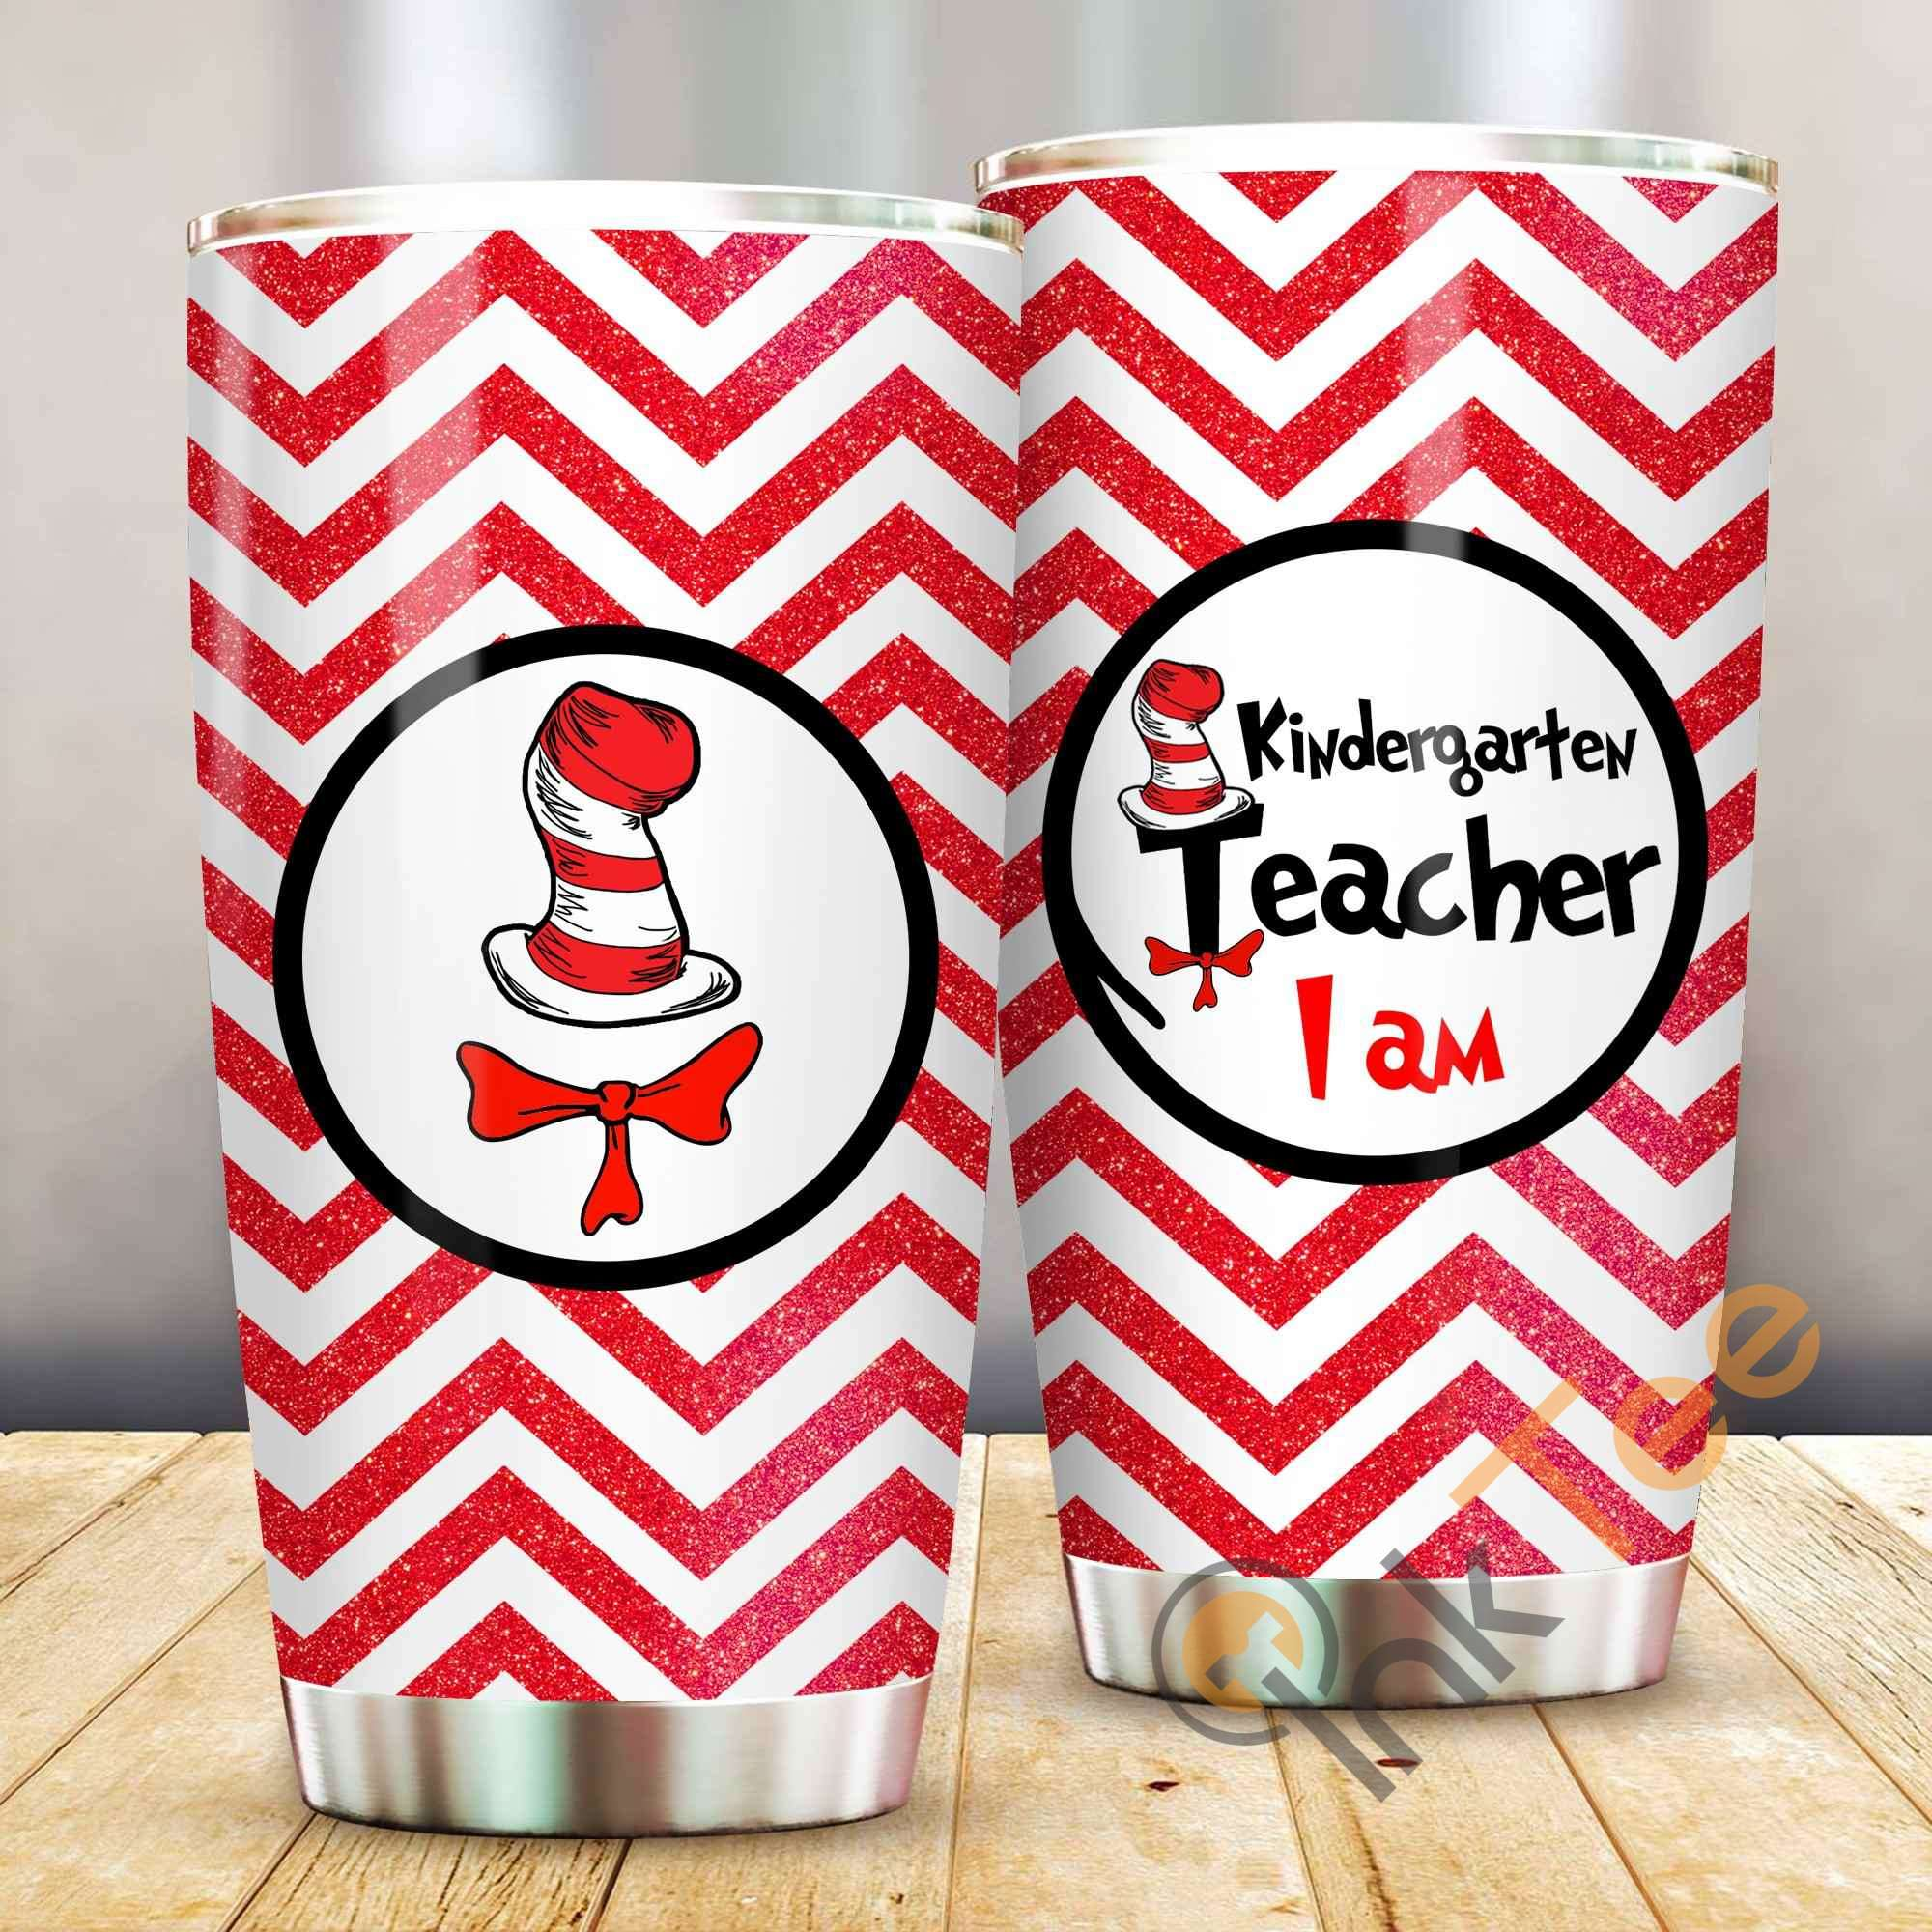 Dr Seuss Im Kindergarten Teacher Amazon Best Seller Sku 3899 Stainless Steel Tumbler